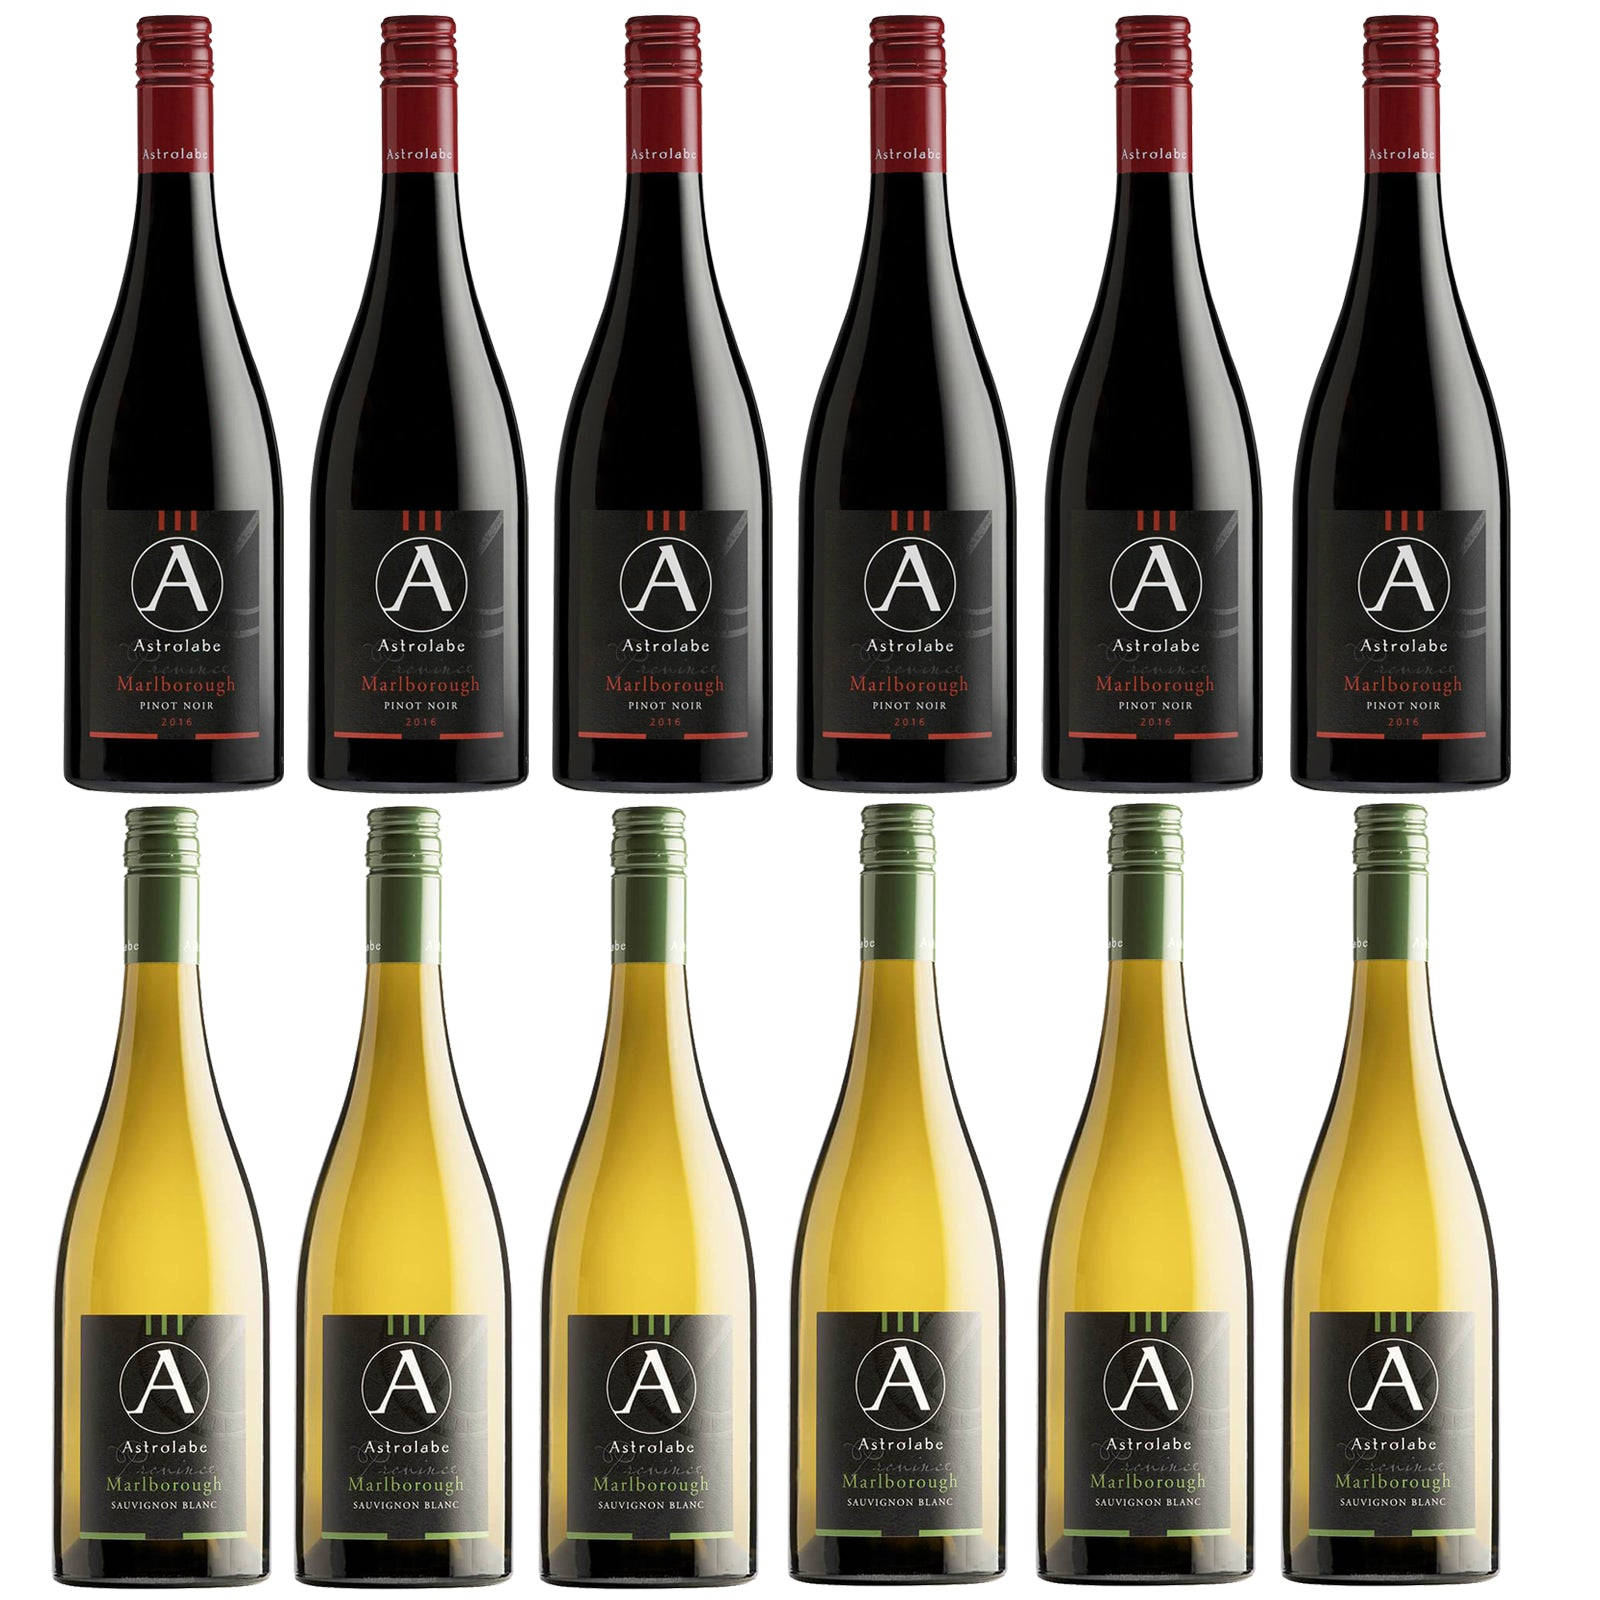 Astrolabe Marlborough Sauvignon Blanc 2018 & Astrolabe Marlborough Pinot Noir 2016 (Case of 12)